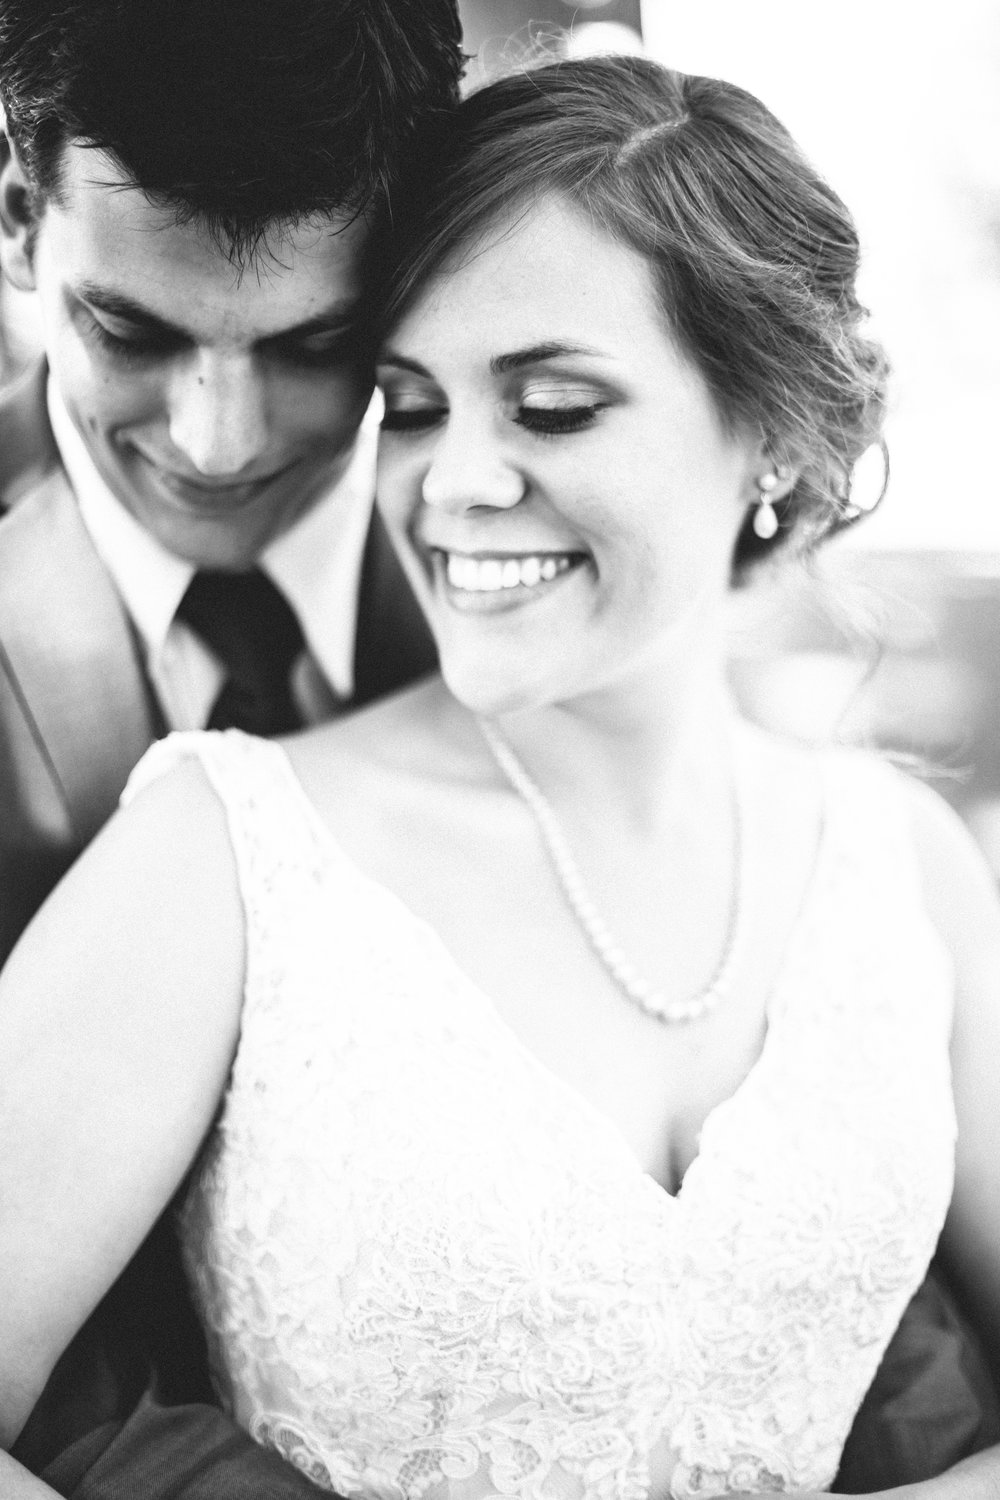 Jordan & Shantel Married - Idaho - Corrie Mick Photography-101.jpg